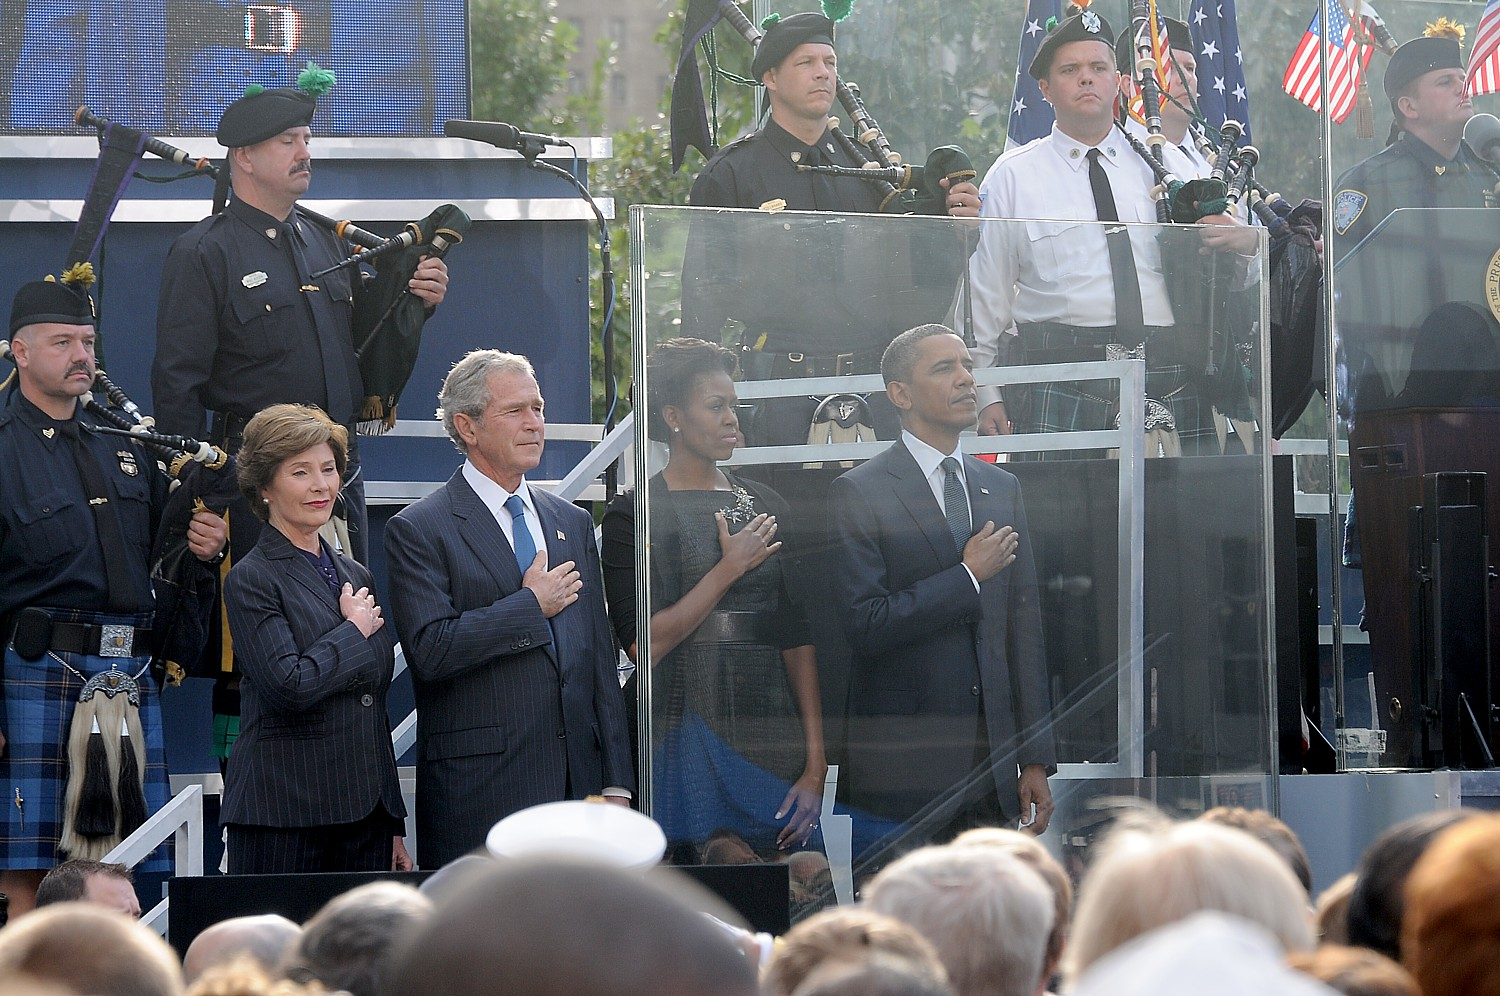 President Obama and First Lady Michelle Obama, President George W. Bush and First Lady Laura Bush at the 10th anniversary 9/11 Commemoration at the site of the World Trade Center, New York City © 2016 Karen Rubin/news-photos-features.com